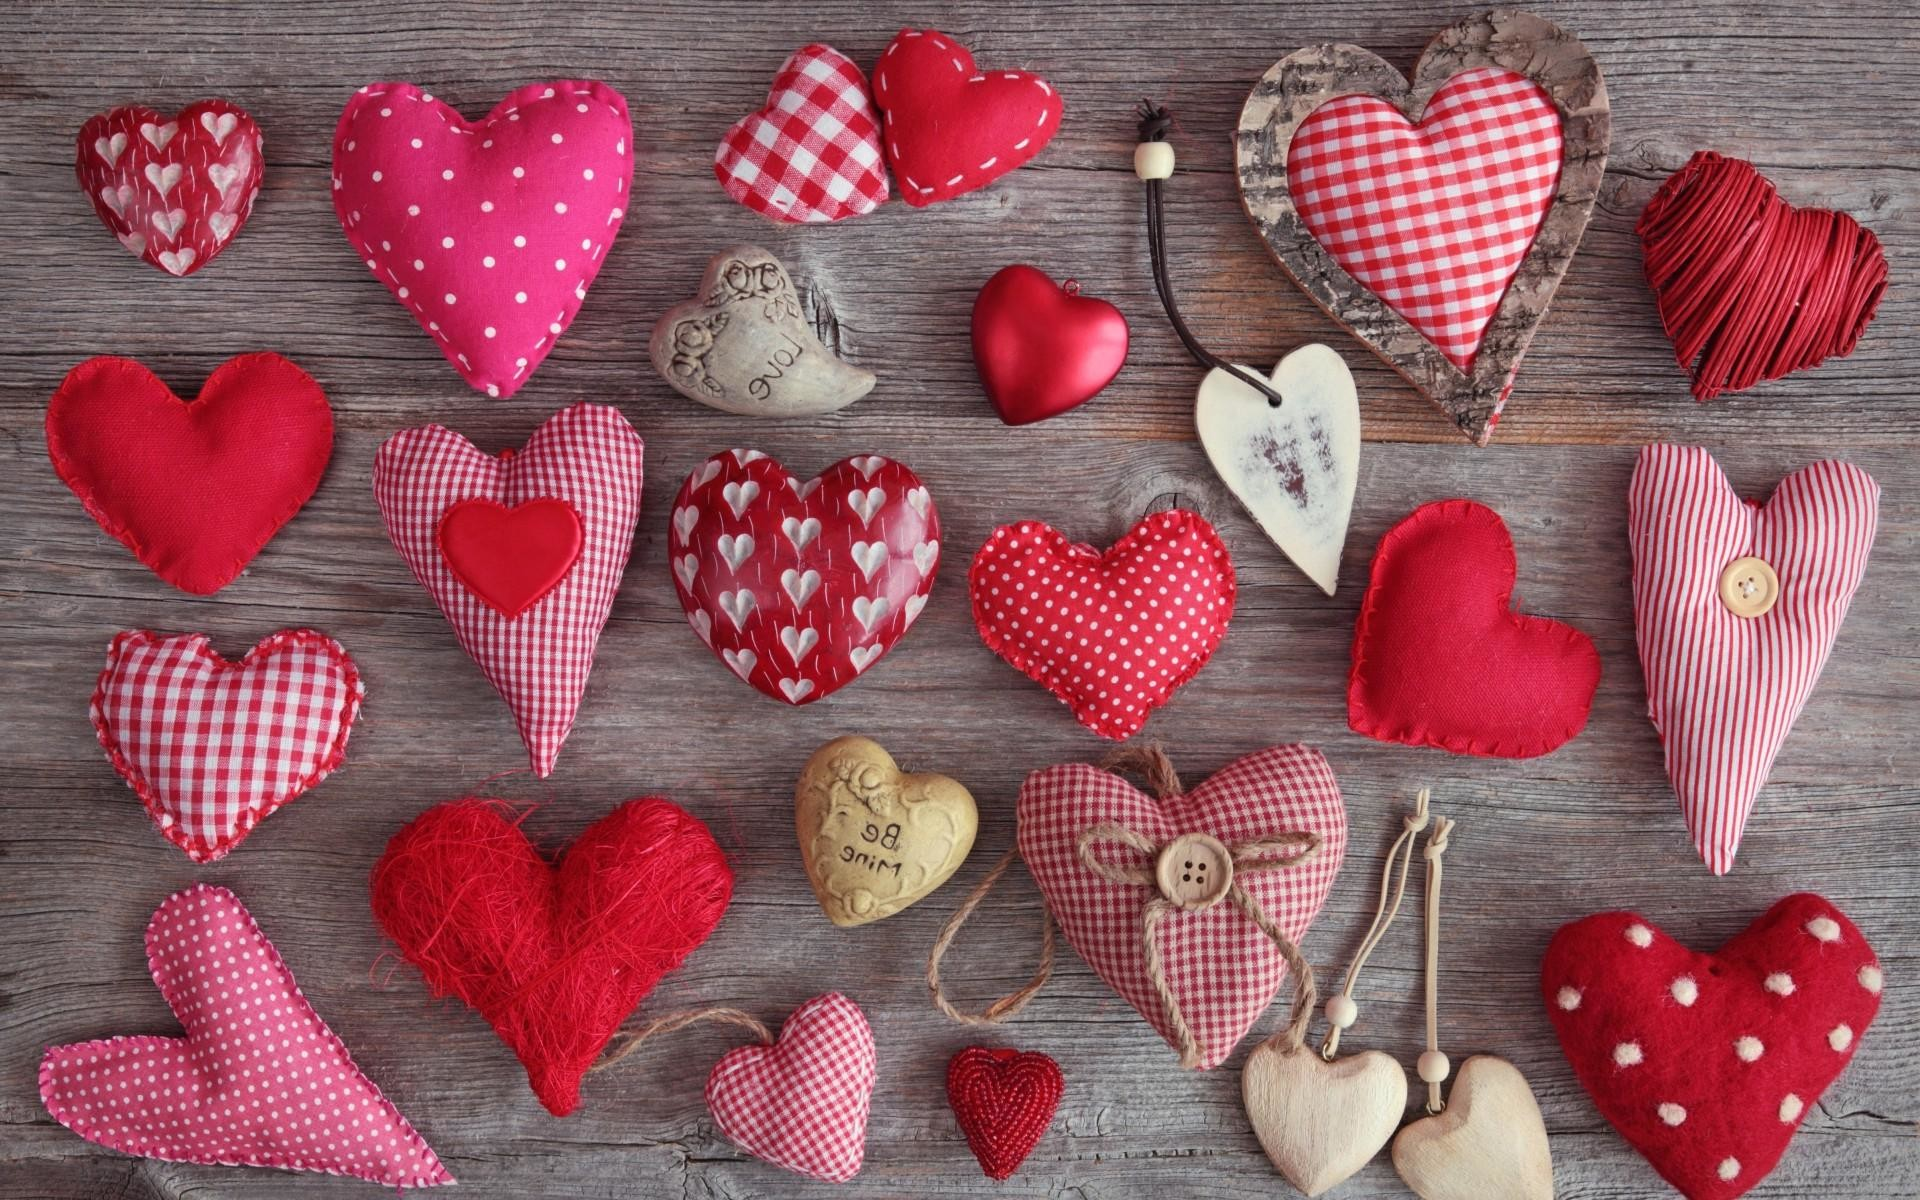 10 Top Cute Love Heart Wallpapers For Mobile Full Hd 1920: Valentine Wallpapers For Desktop ·①